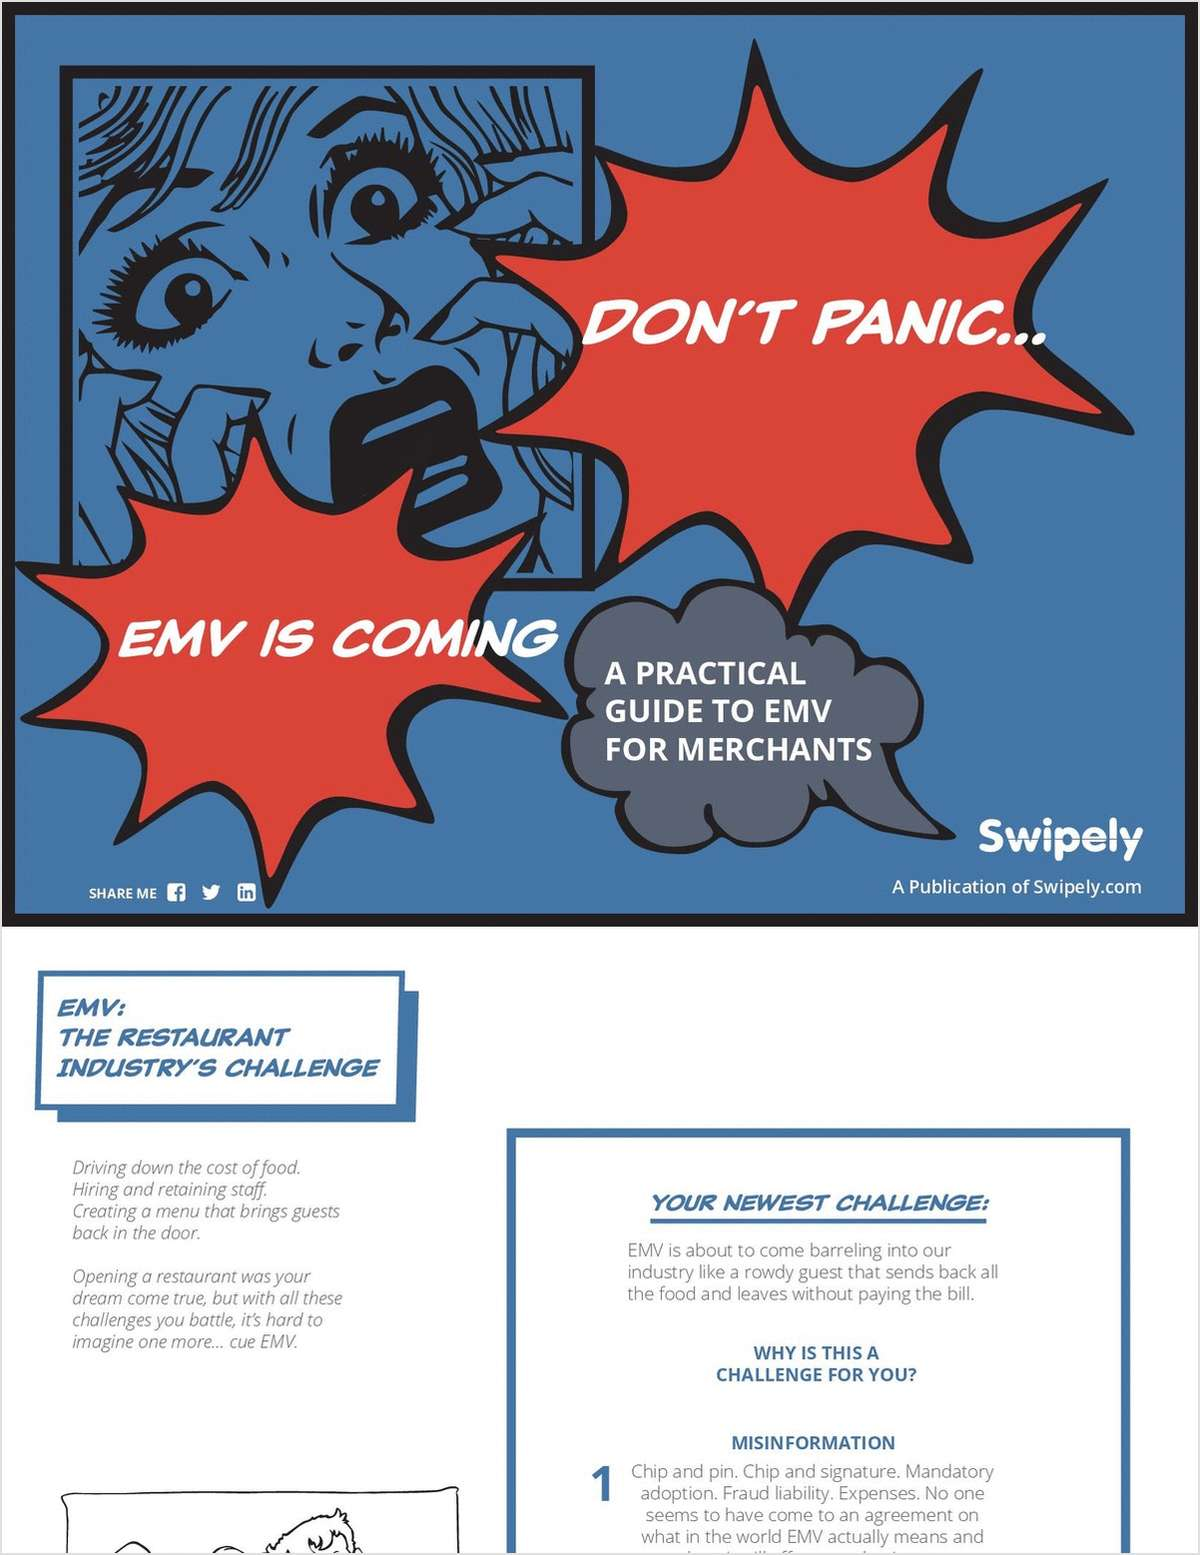 EMV Is Coming? Don't Panic  A Practical Guide to EMV for Merchants